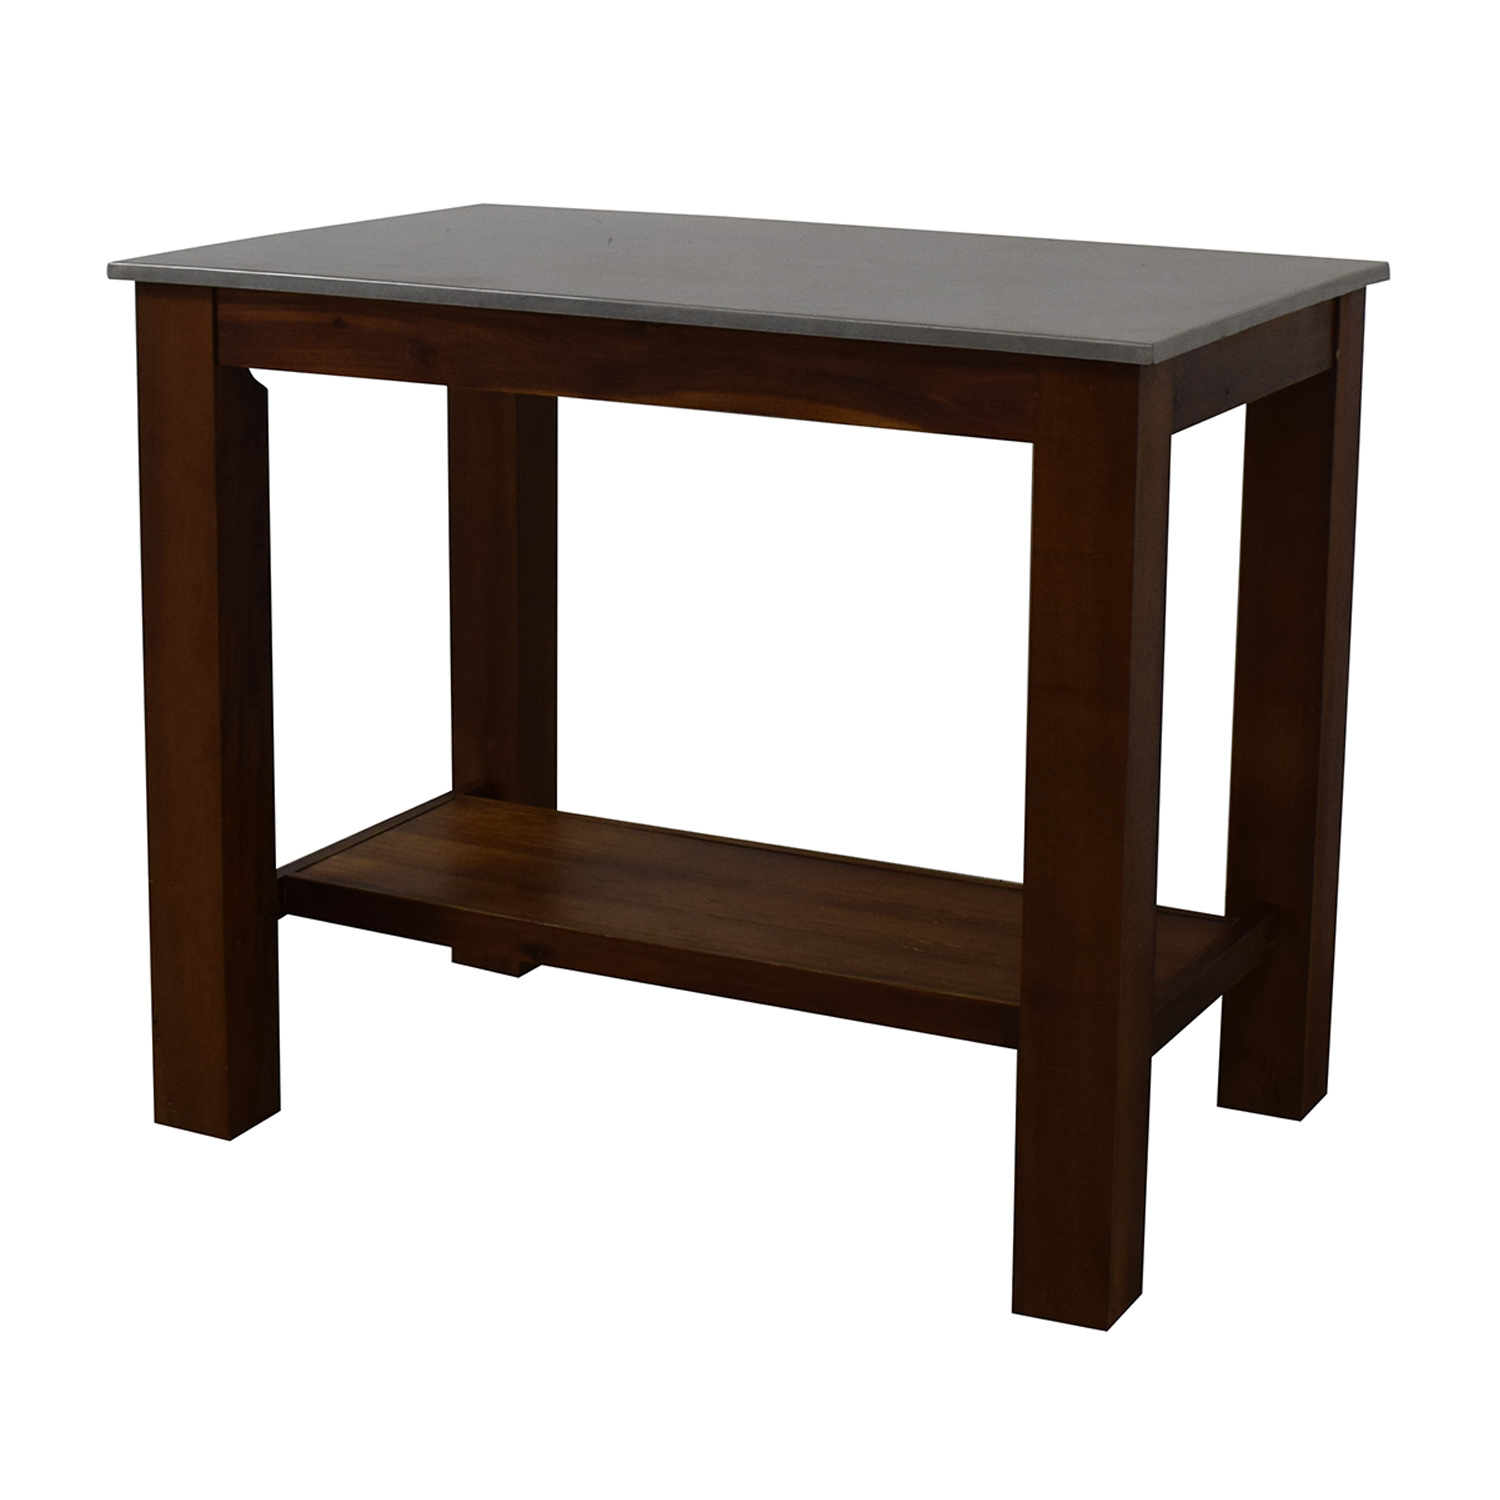 buy West Elm West Elm Rustic Kitchen Island online